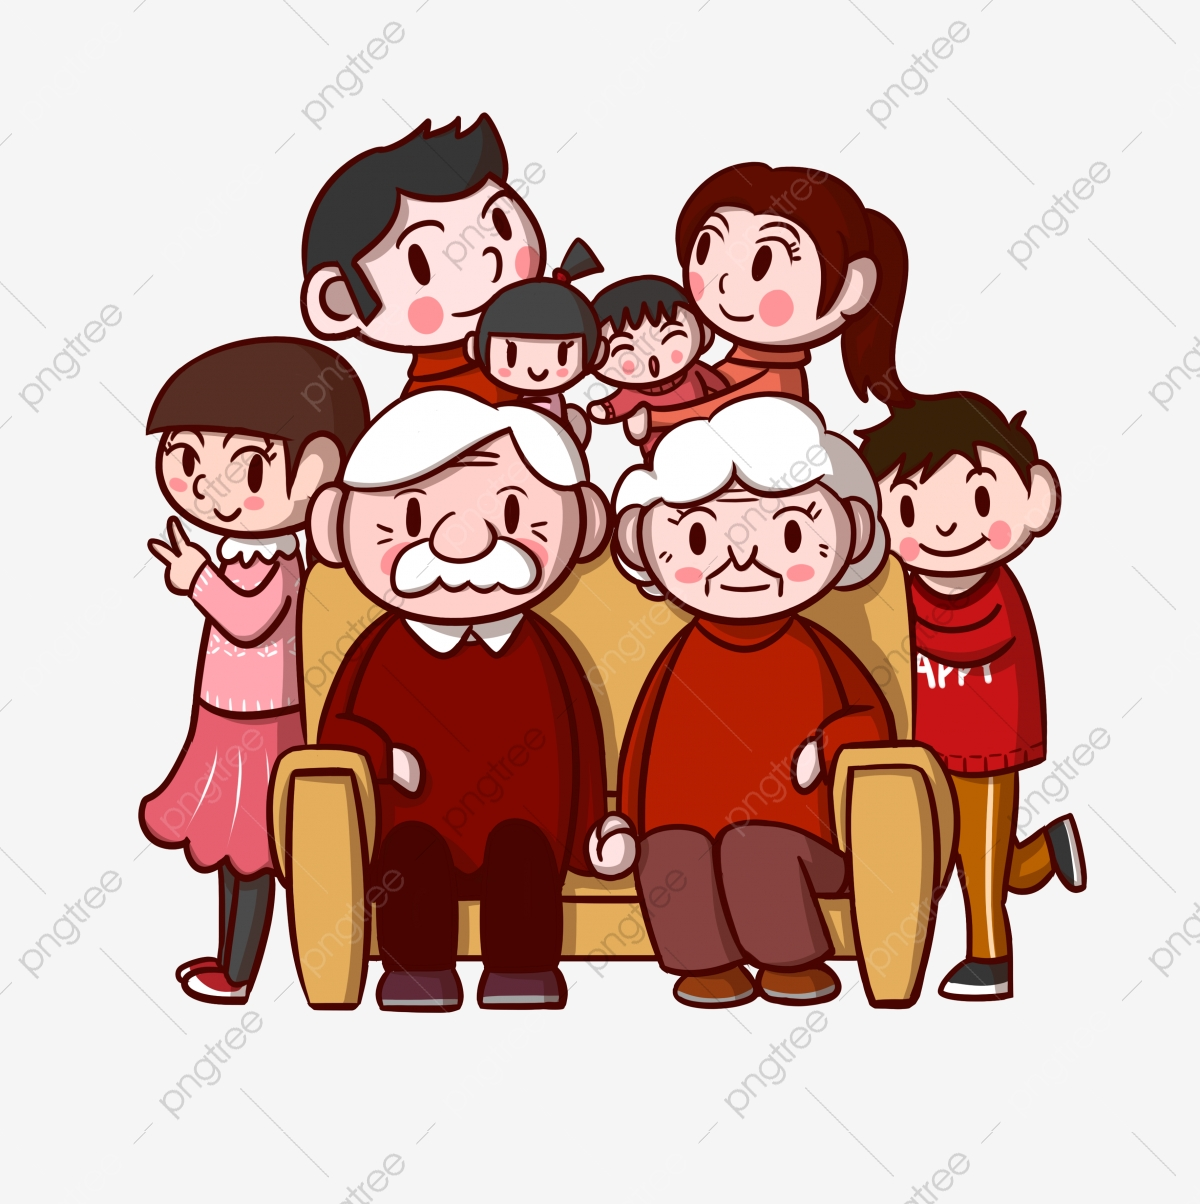 hight resolution of commercial use resource upgrade to premium plan and get license authorization upgradenow cartoon family portrait cartoon clipart